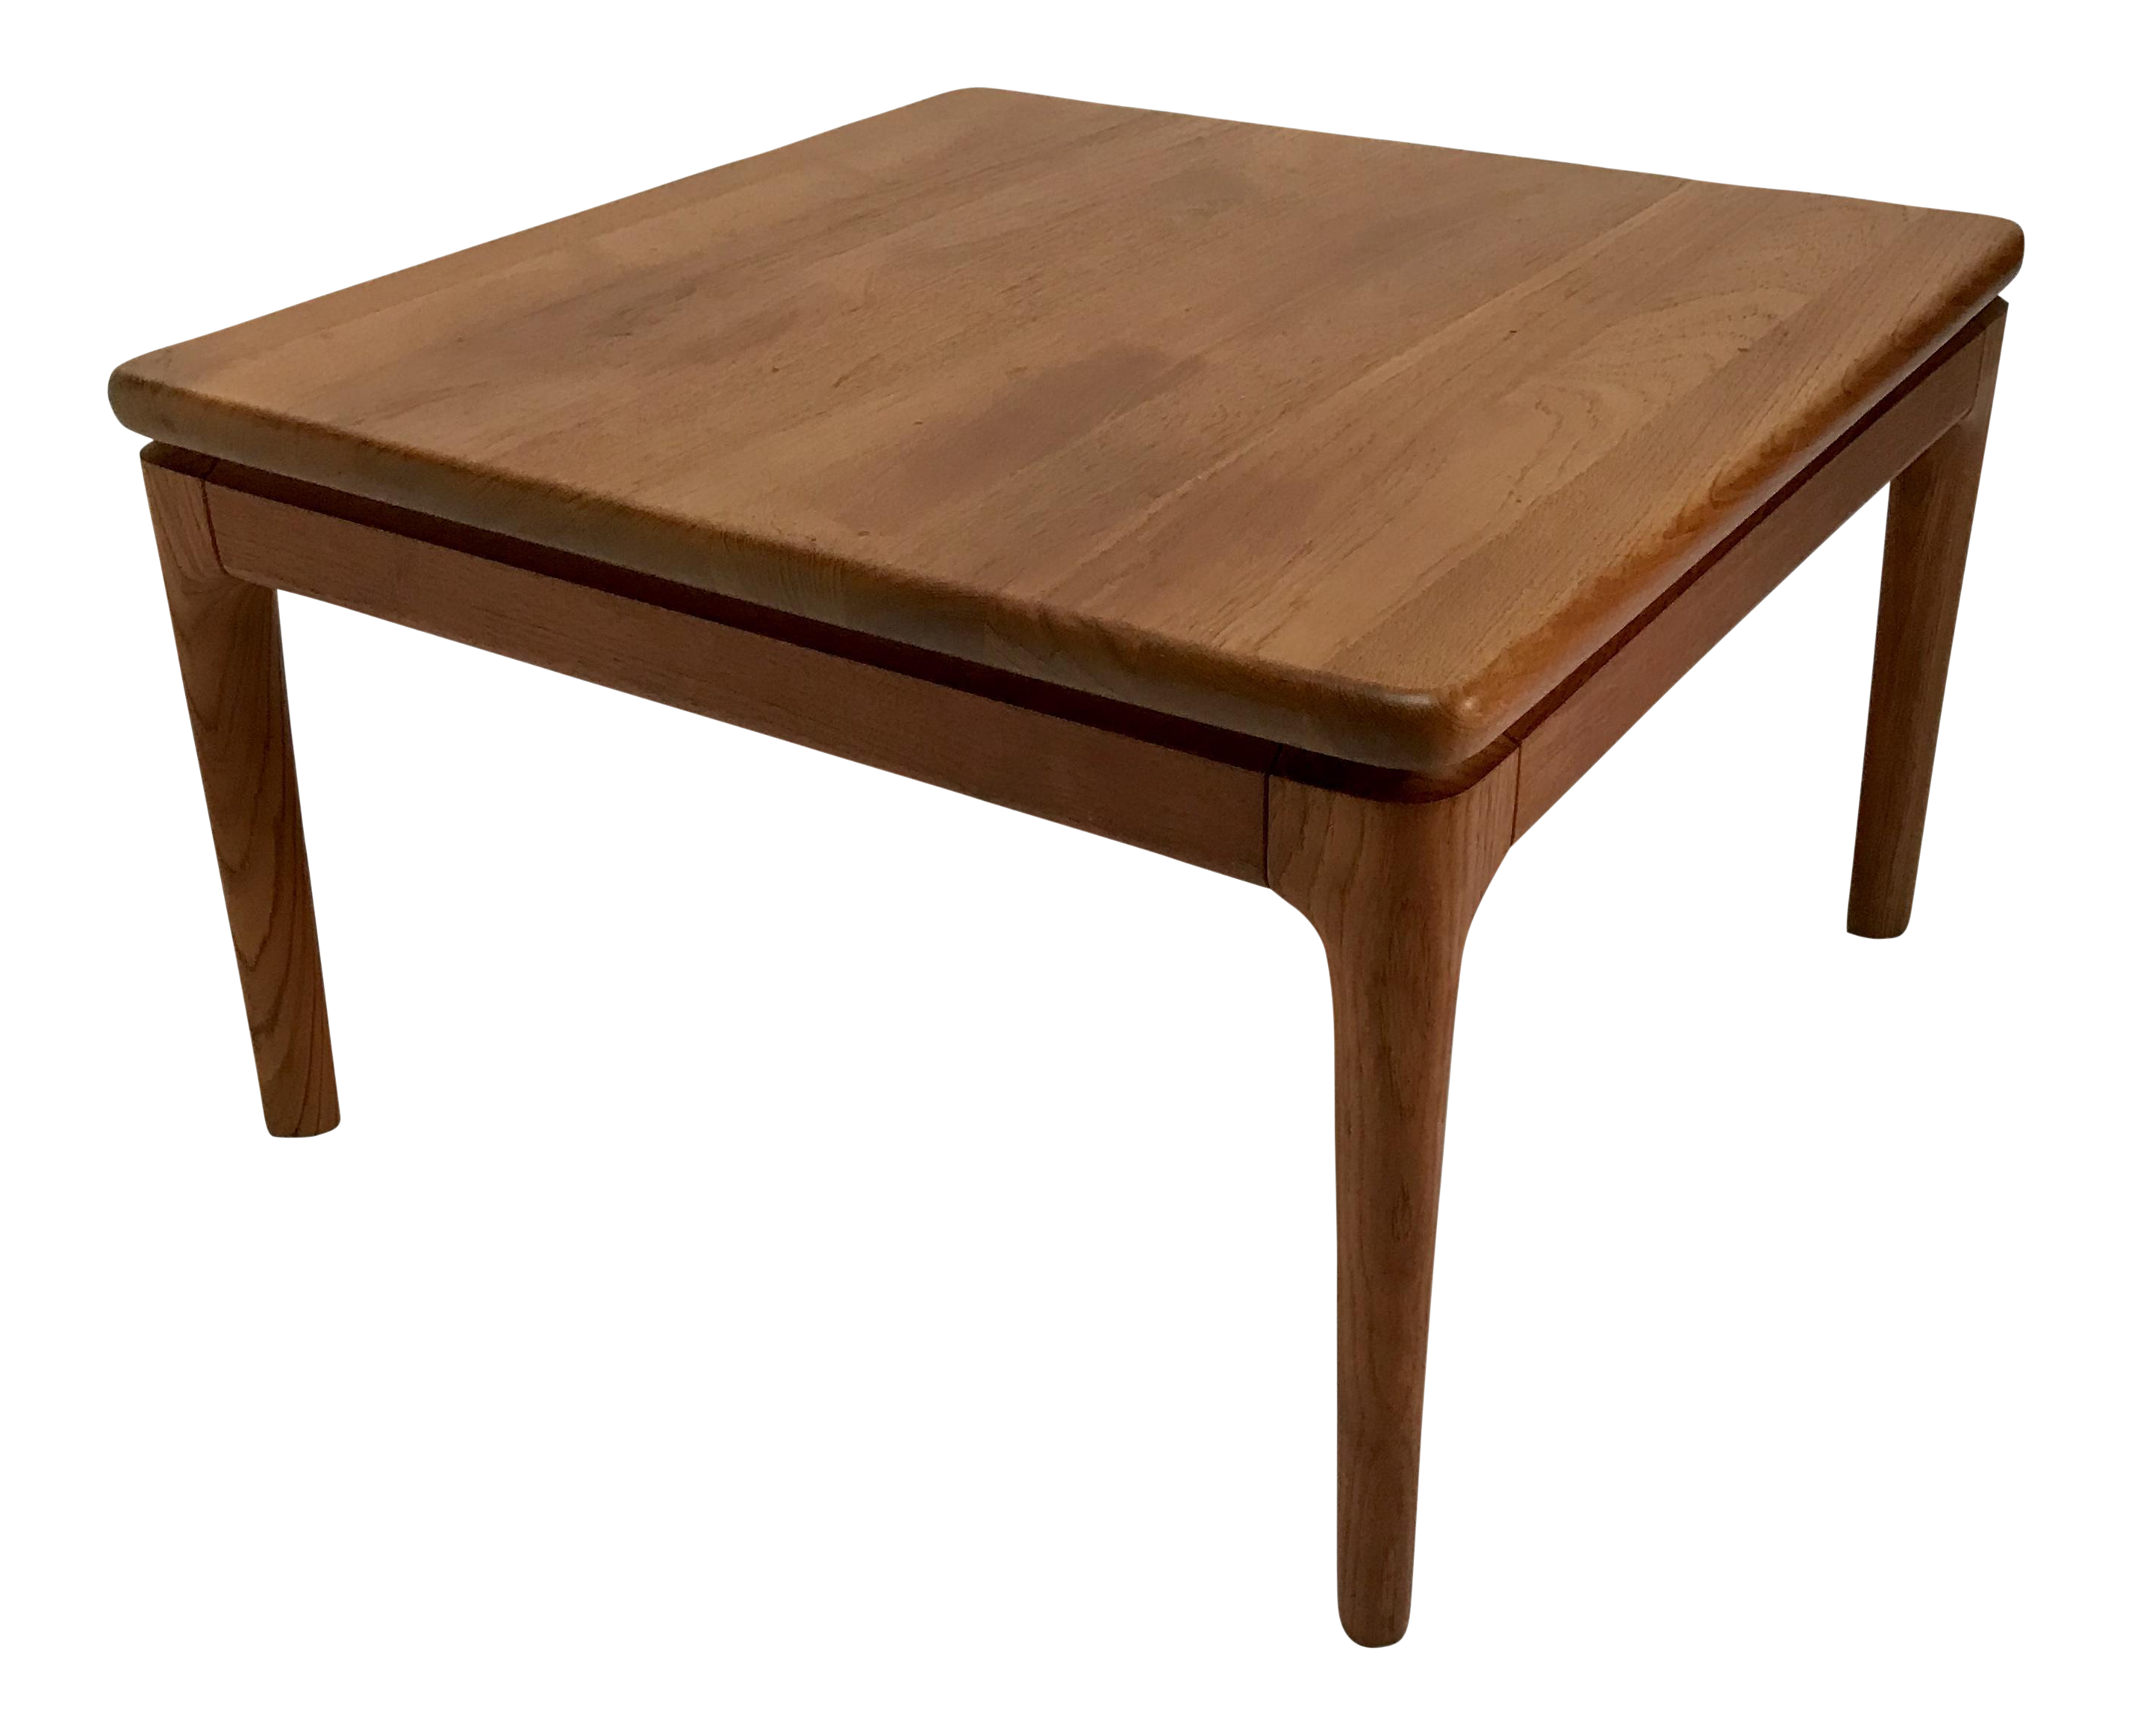 Square Danish Coffee Table By Glostrup